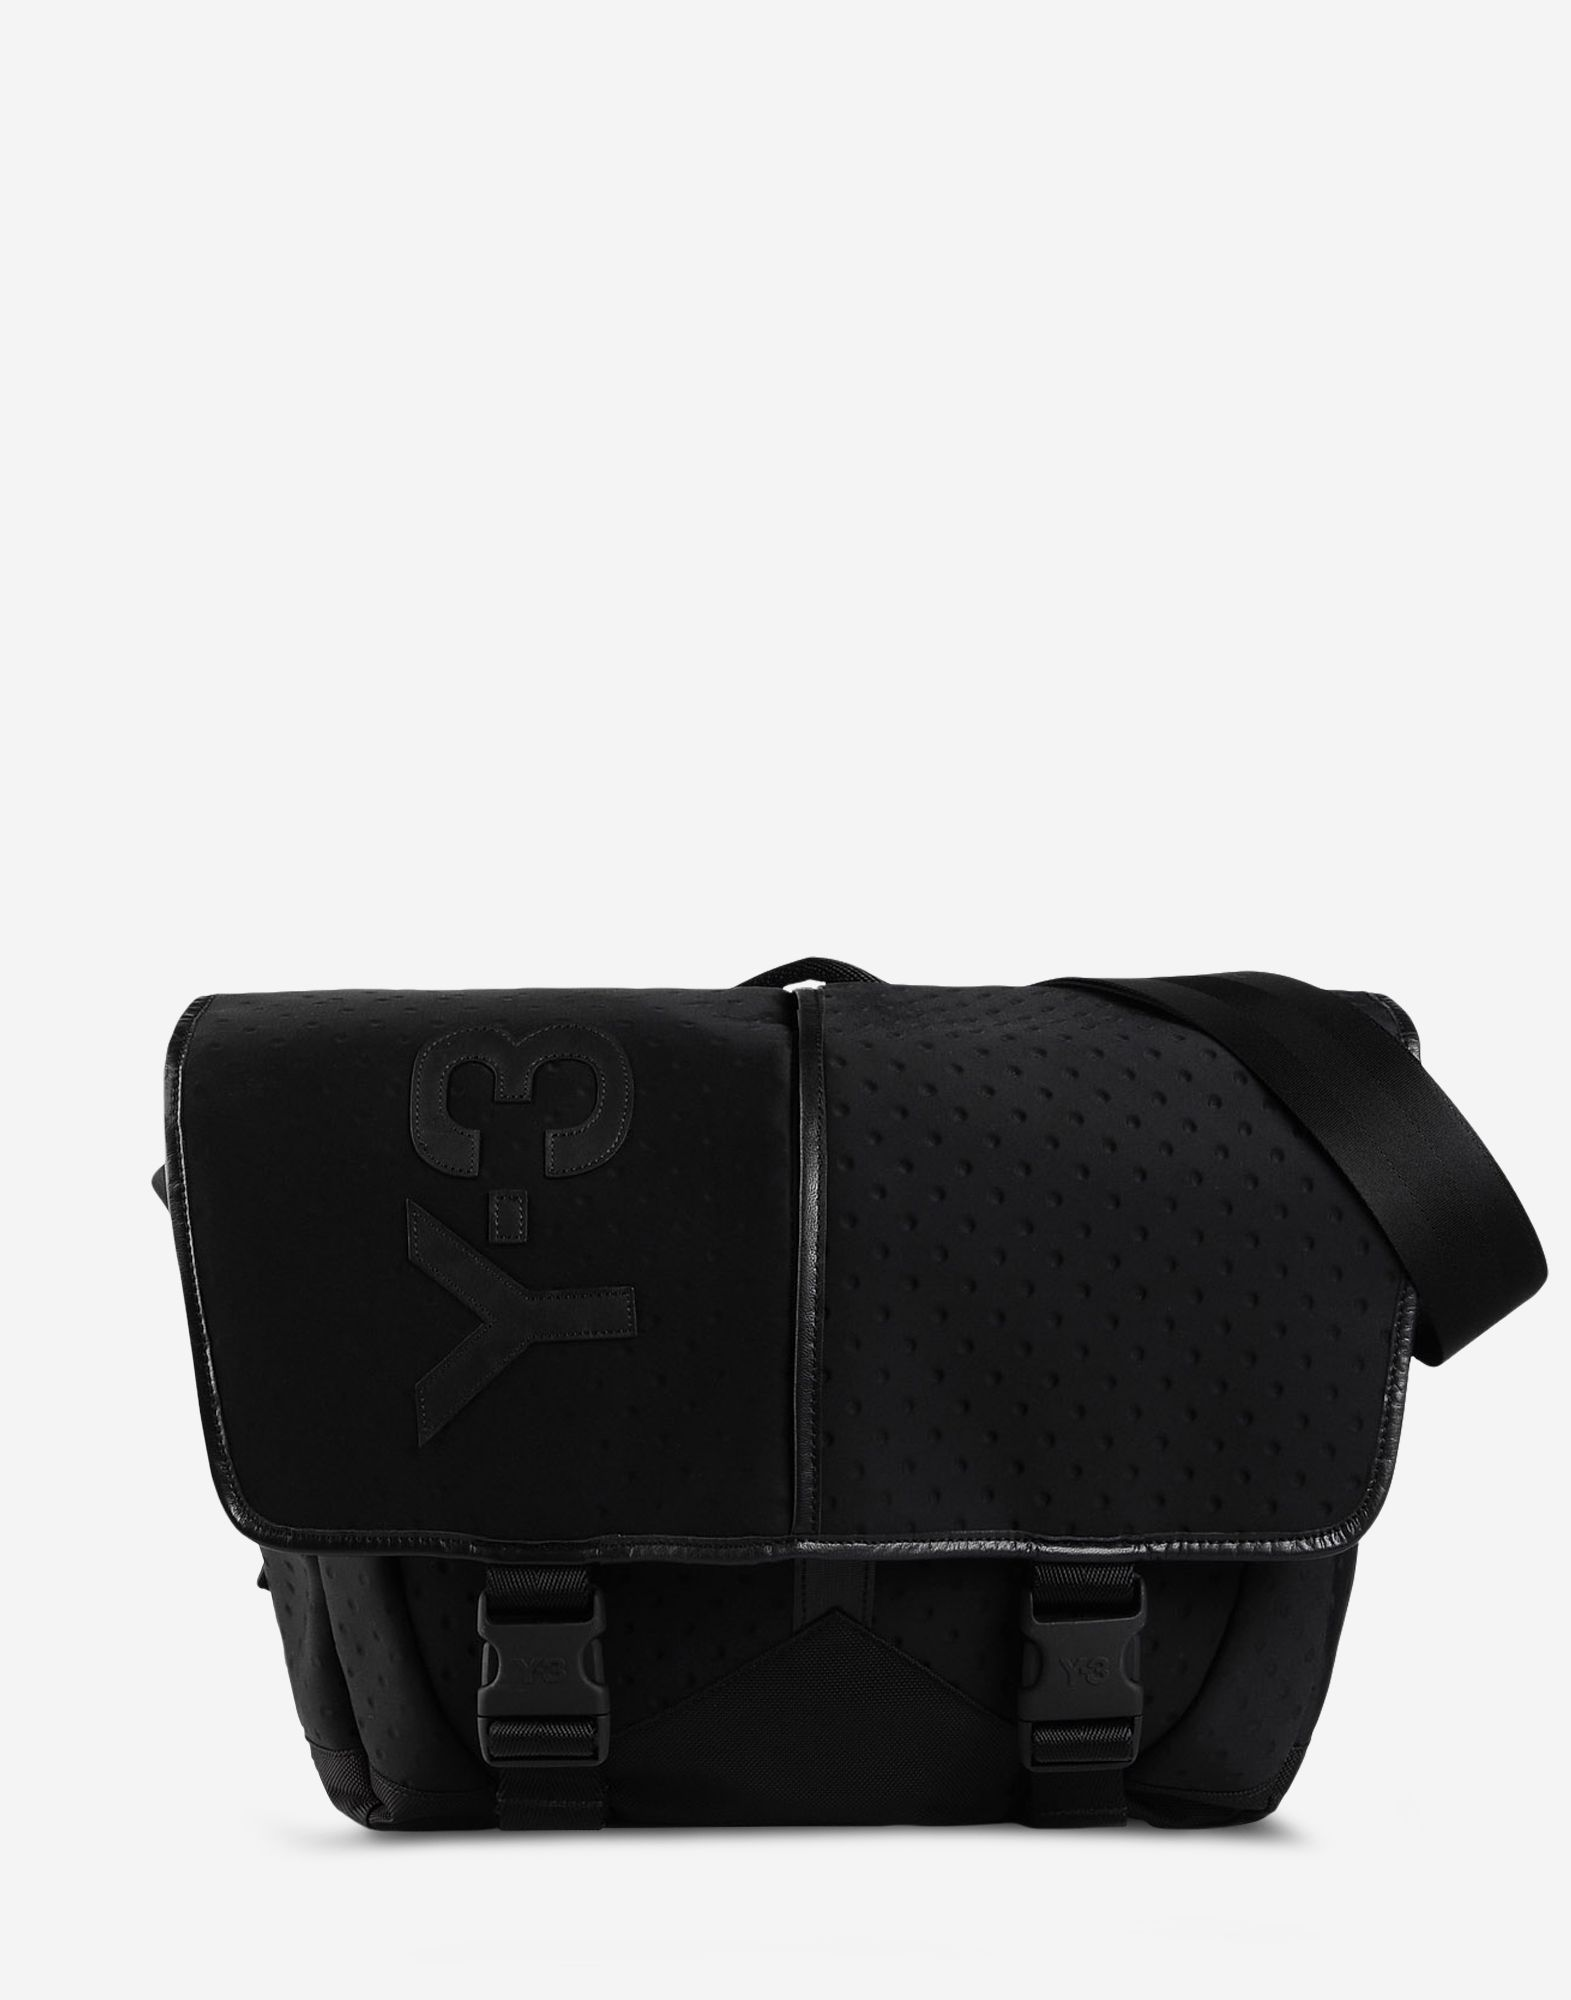 Buy adidas messenger bag   OFF55% Discounted d12e20c68f